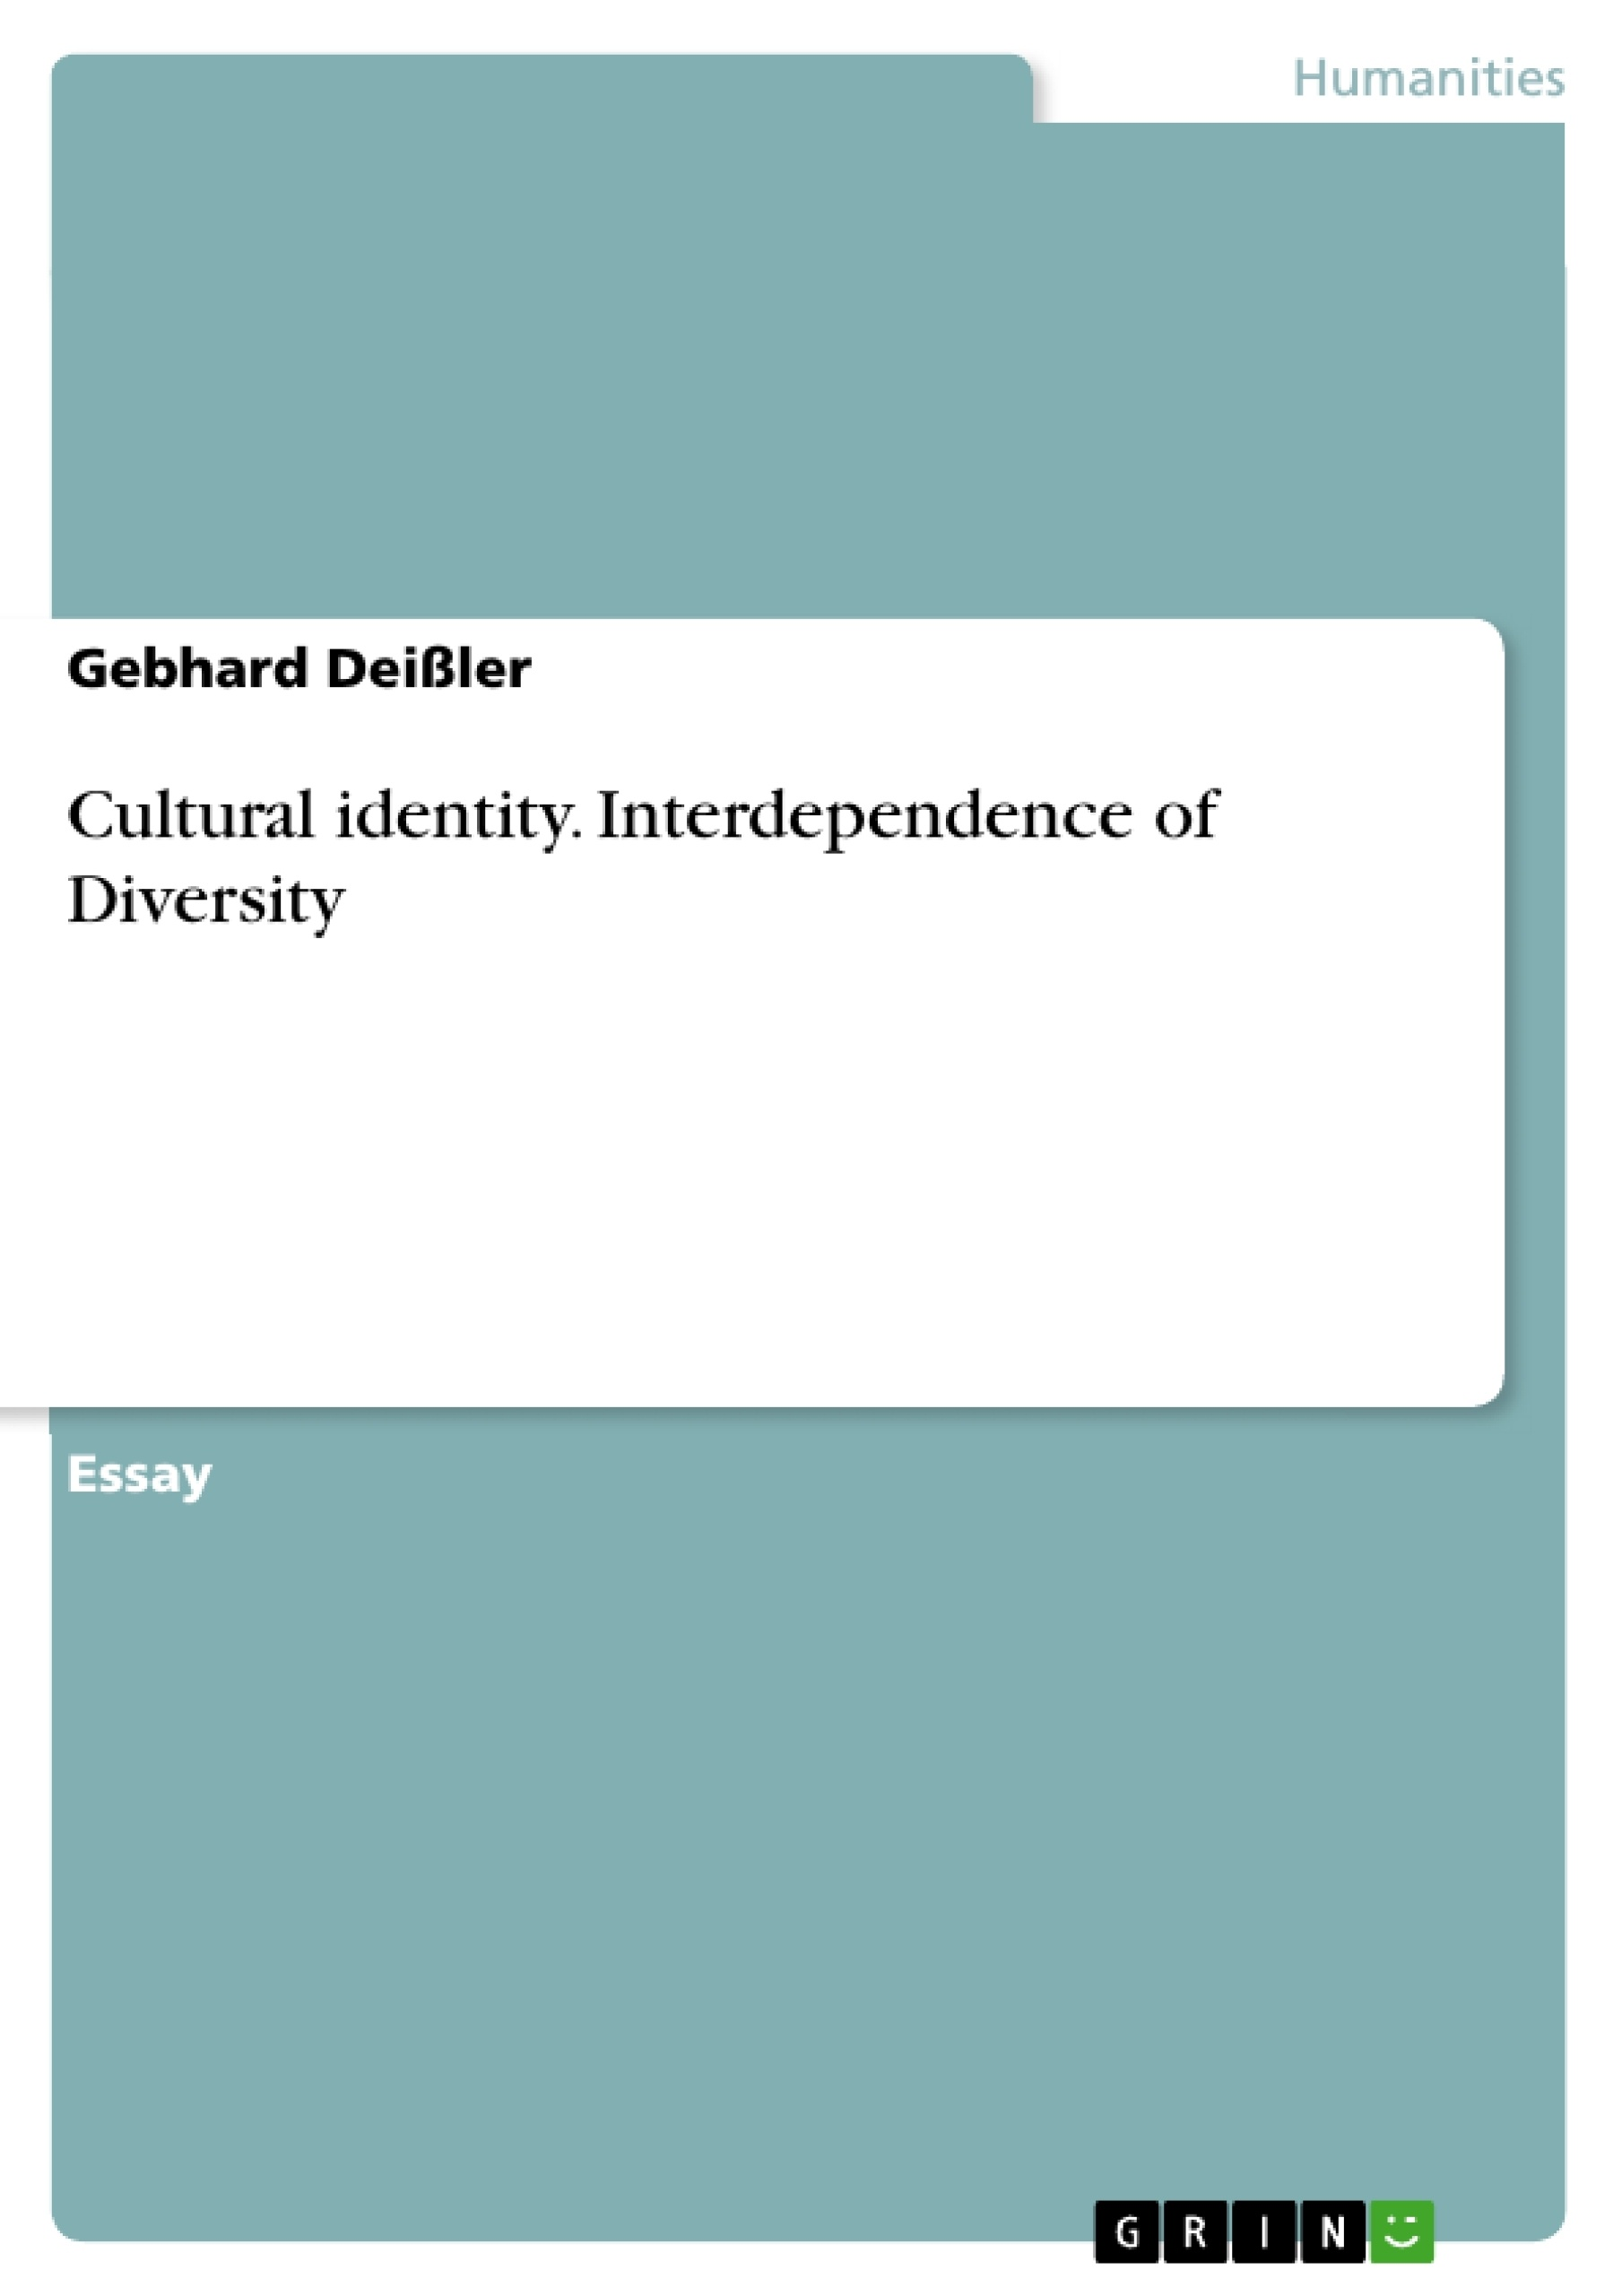 Title: Cultural identity. Interdependence of Diversity